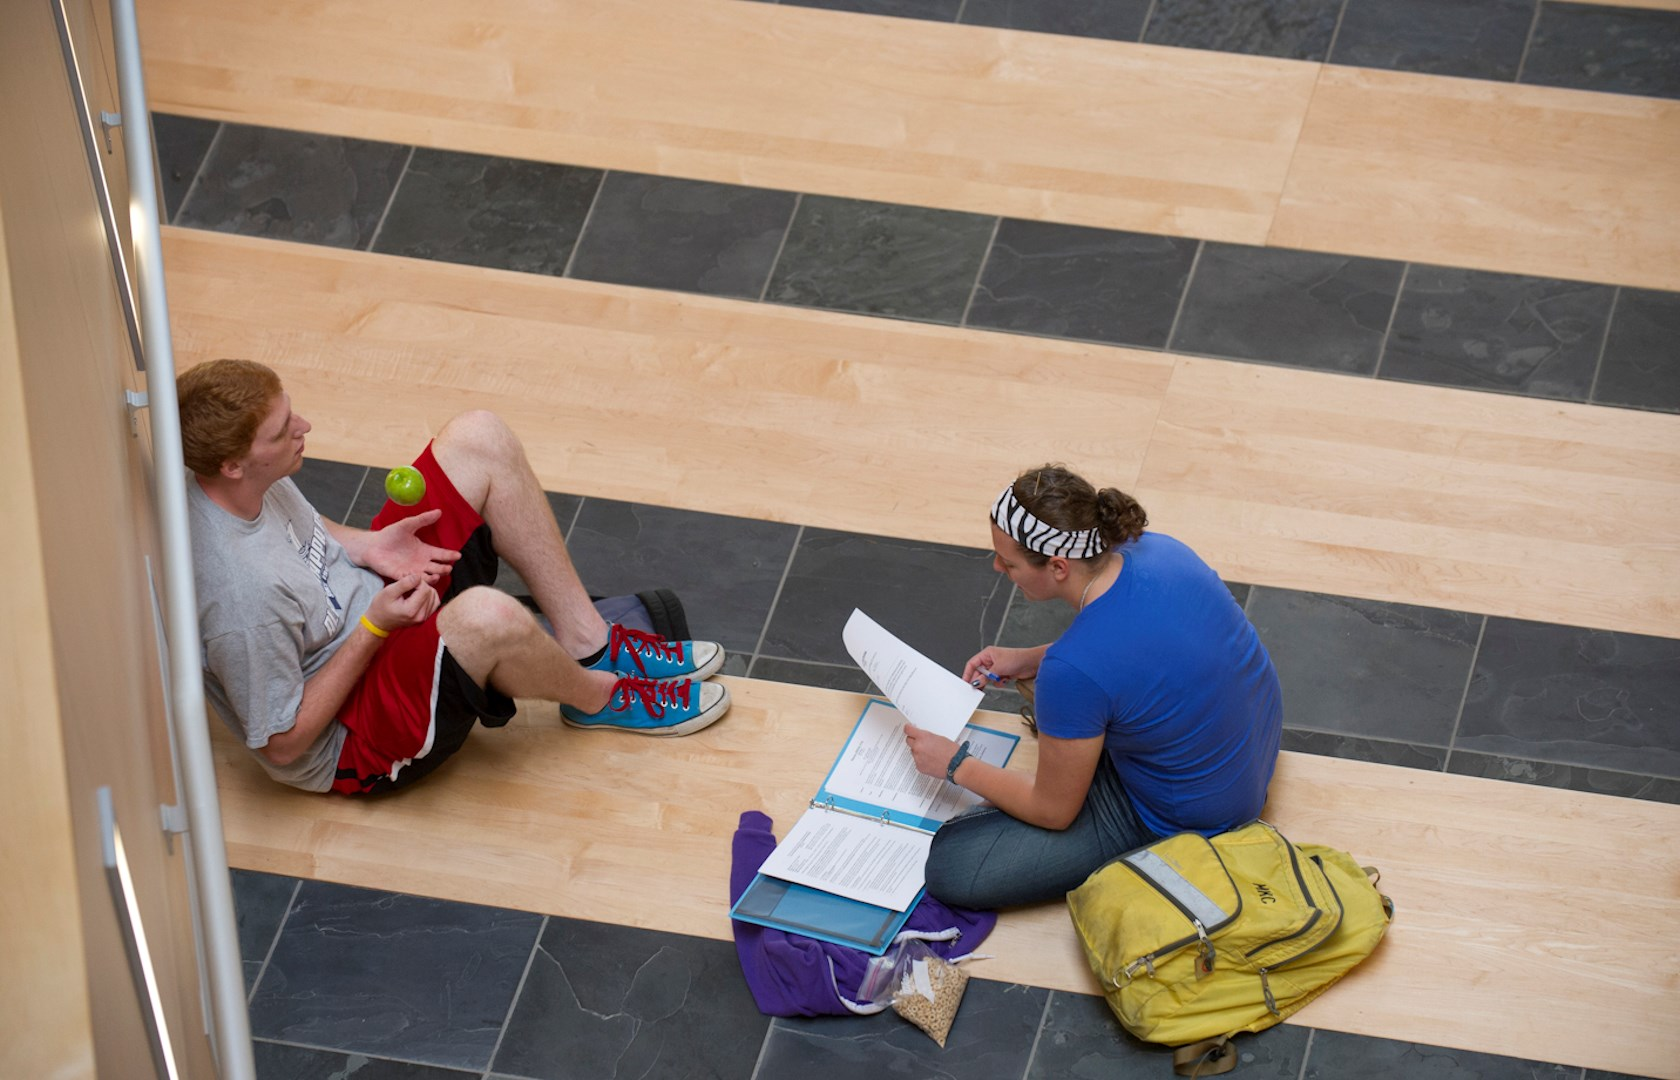 horiz students studying in Atrium